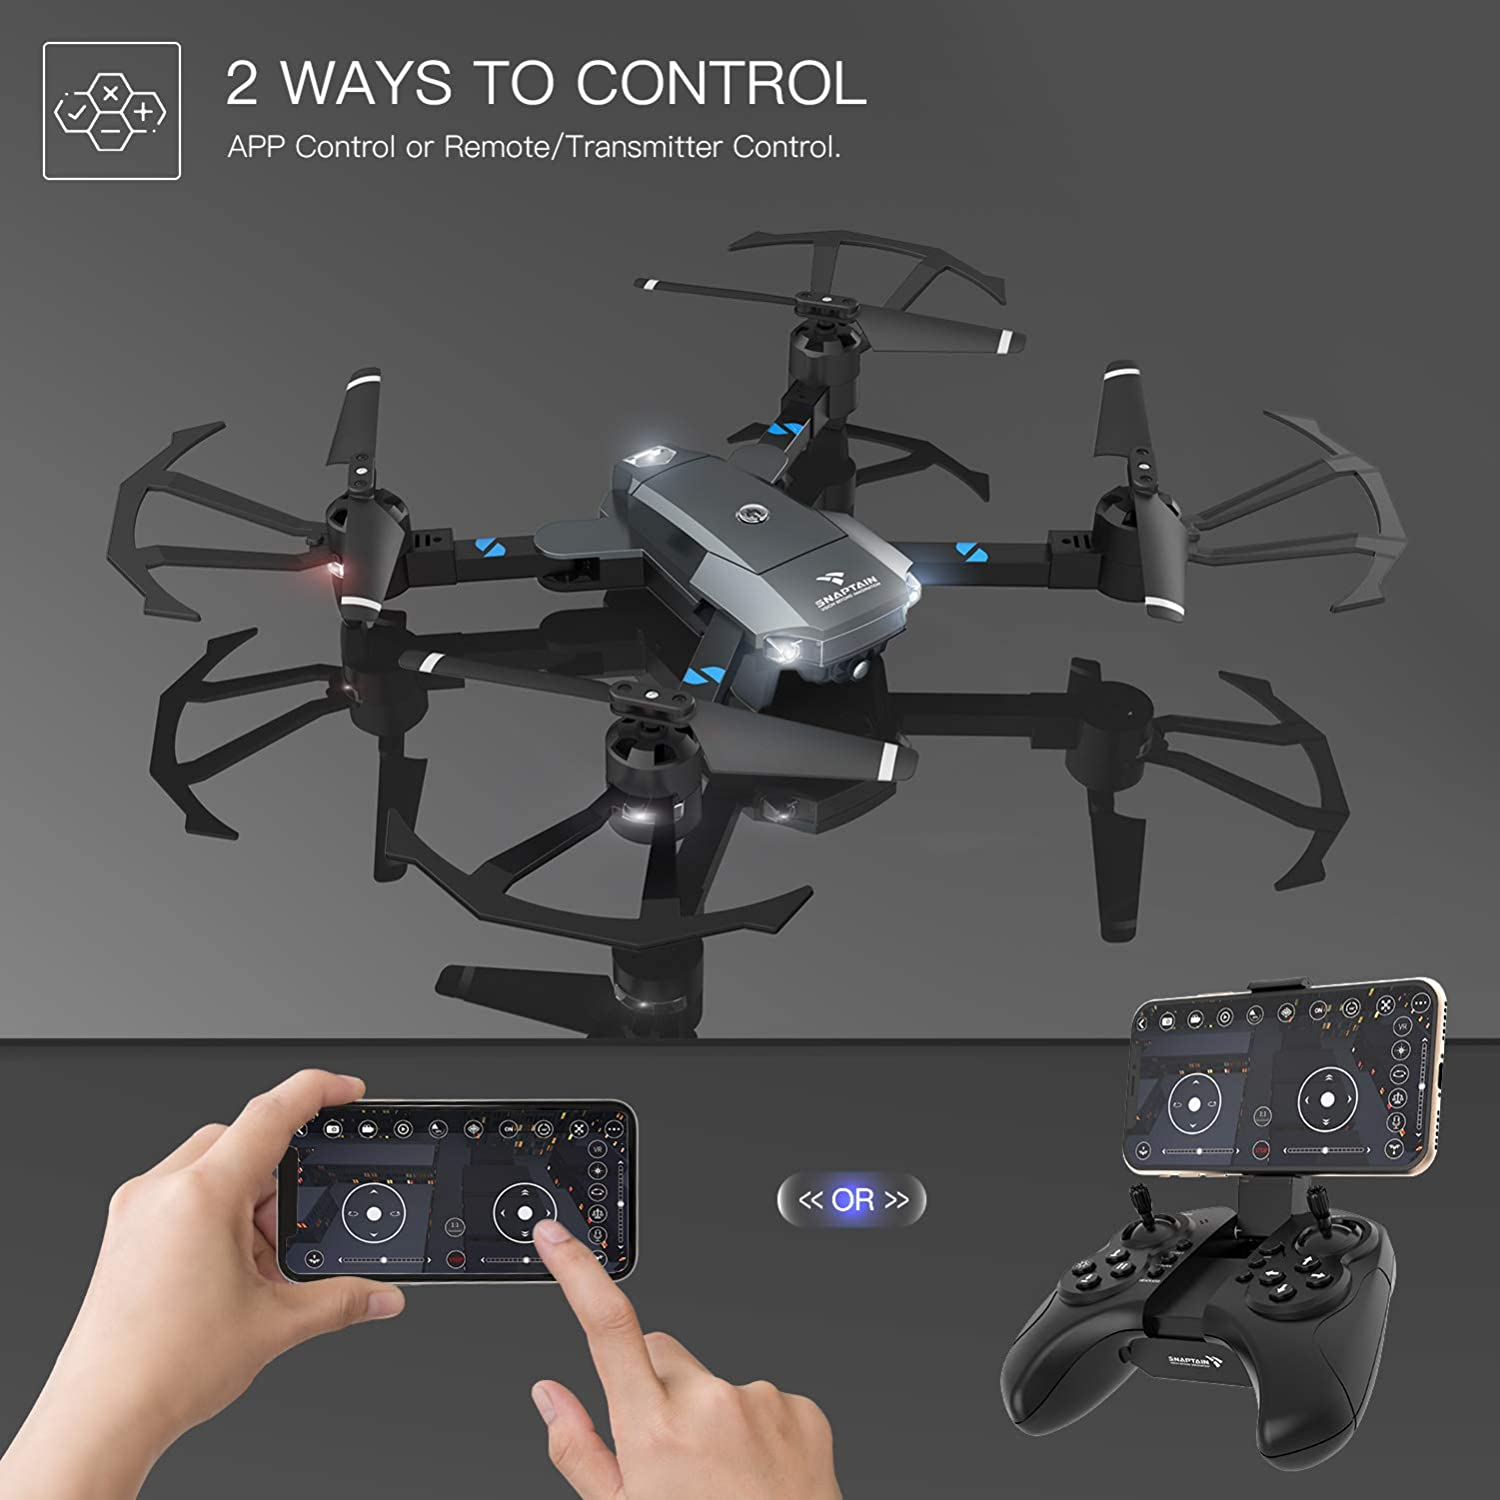 snaptain a15 foldable drone review about APP control via gravity mode and  transmitter control